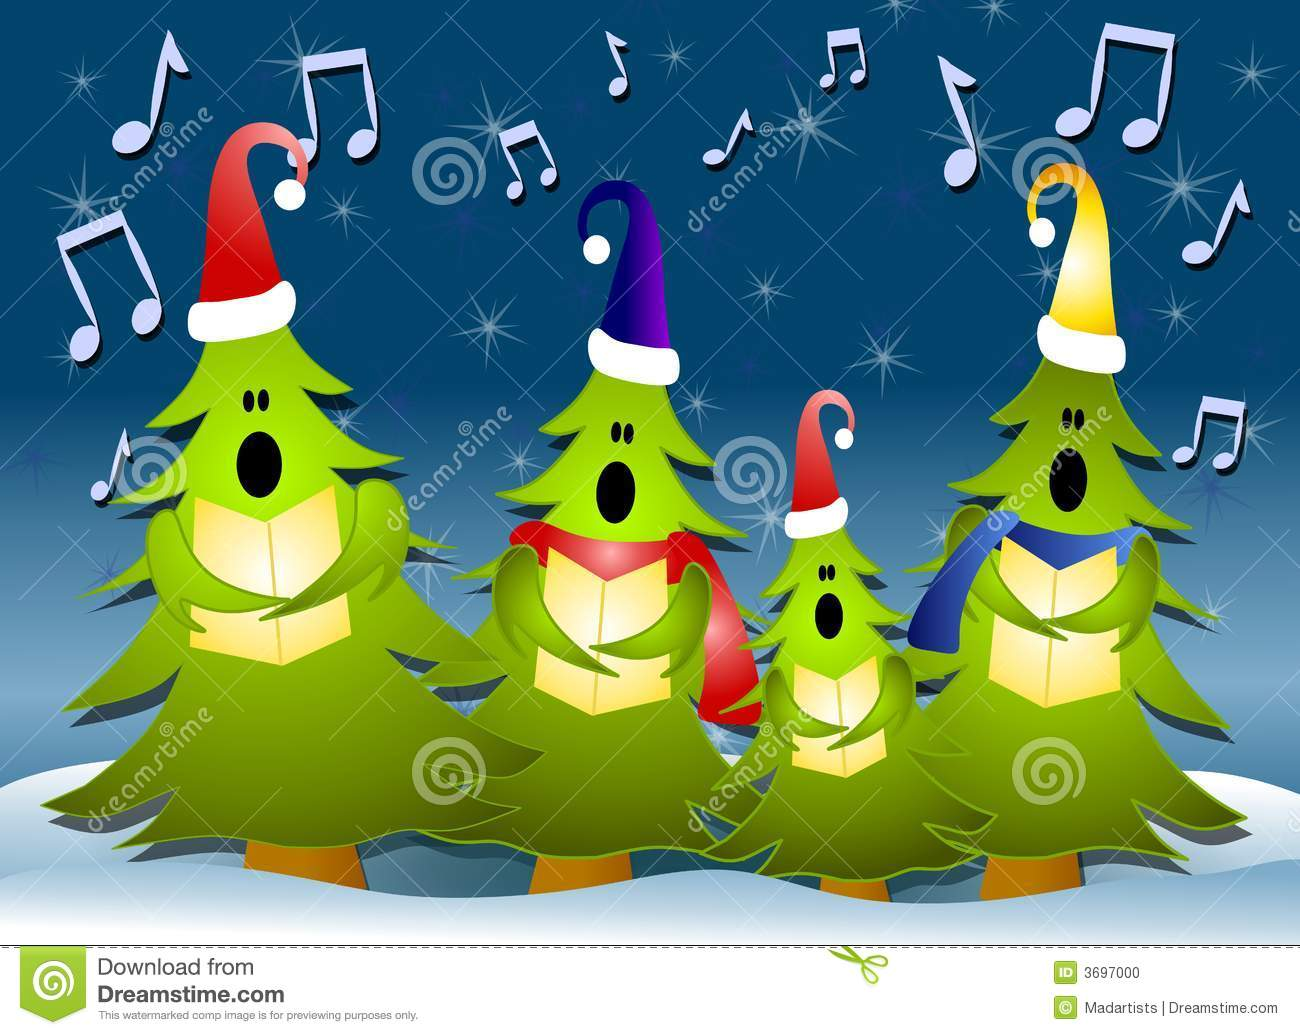 Christmas Singing Images.Christmas Tree Carolers Singing In Snow Stock Illustration